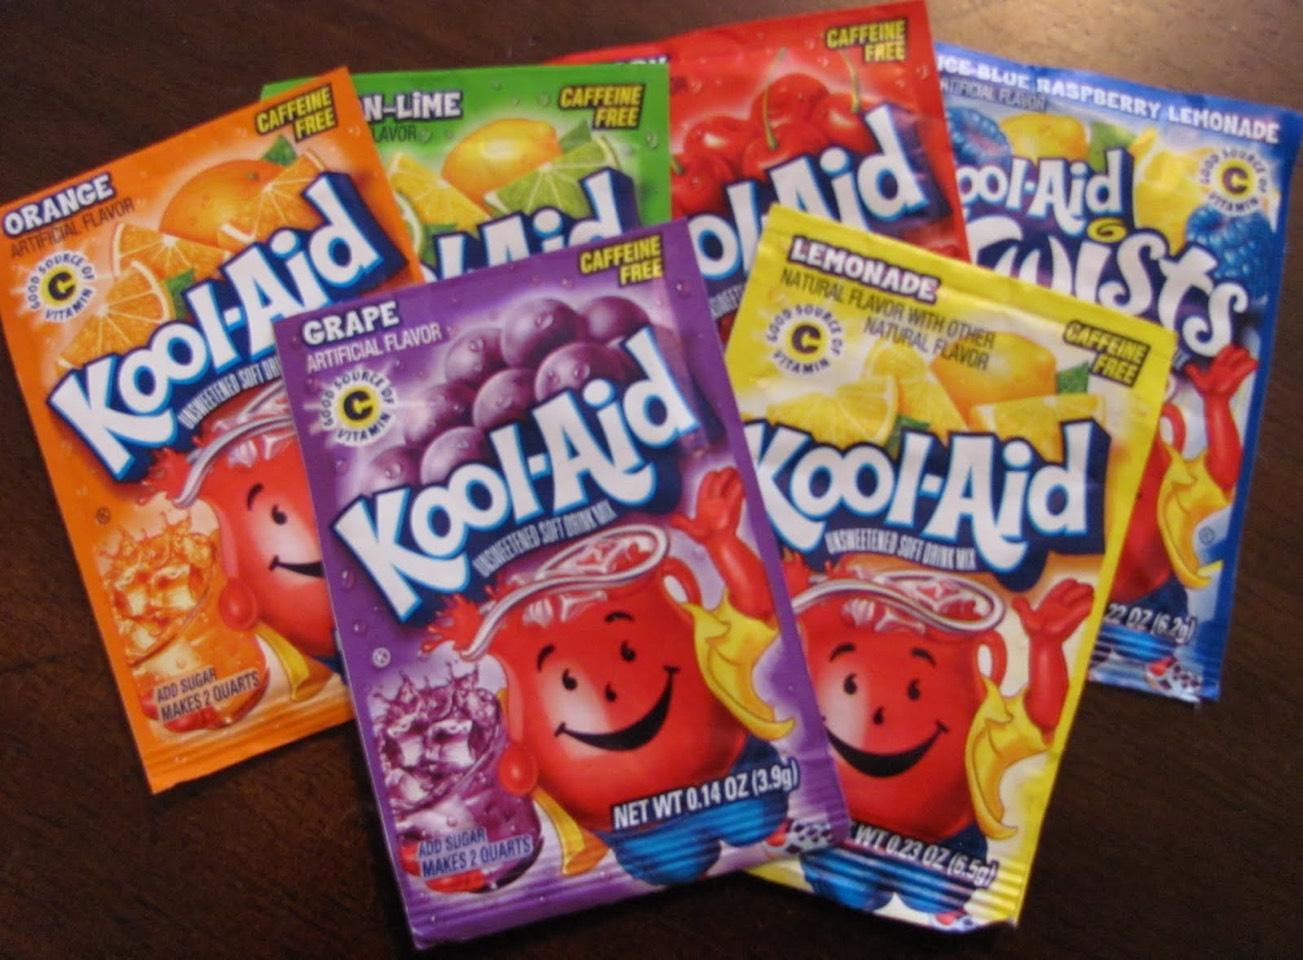 Kool-aid mix (depending on the flavor you want)